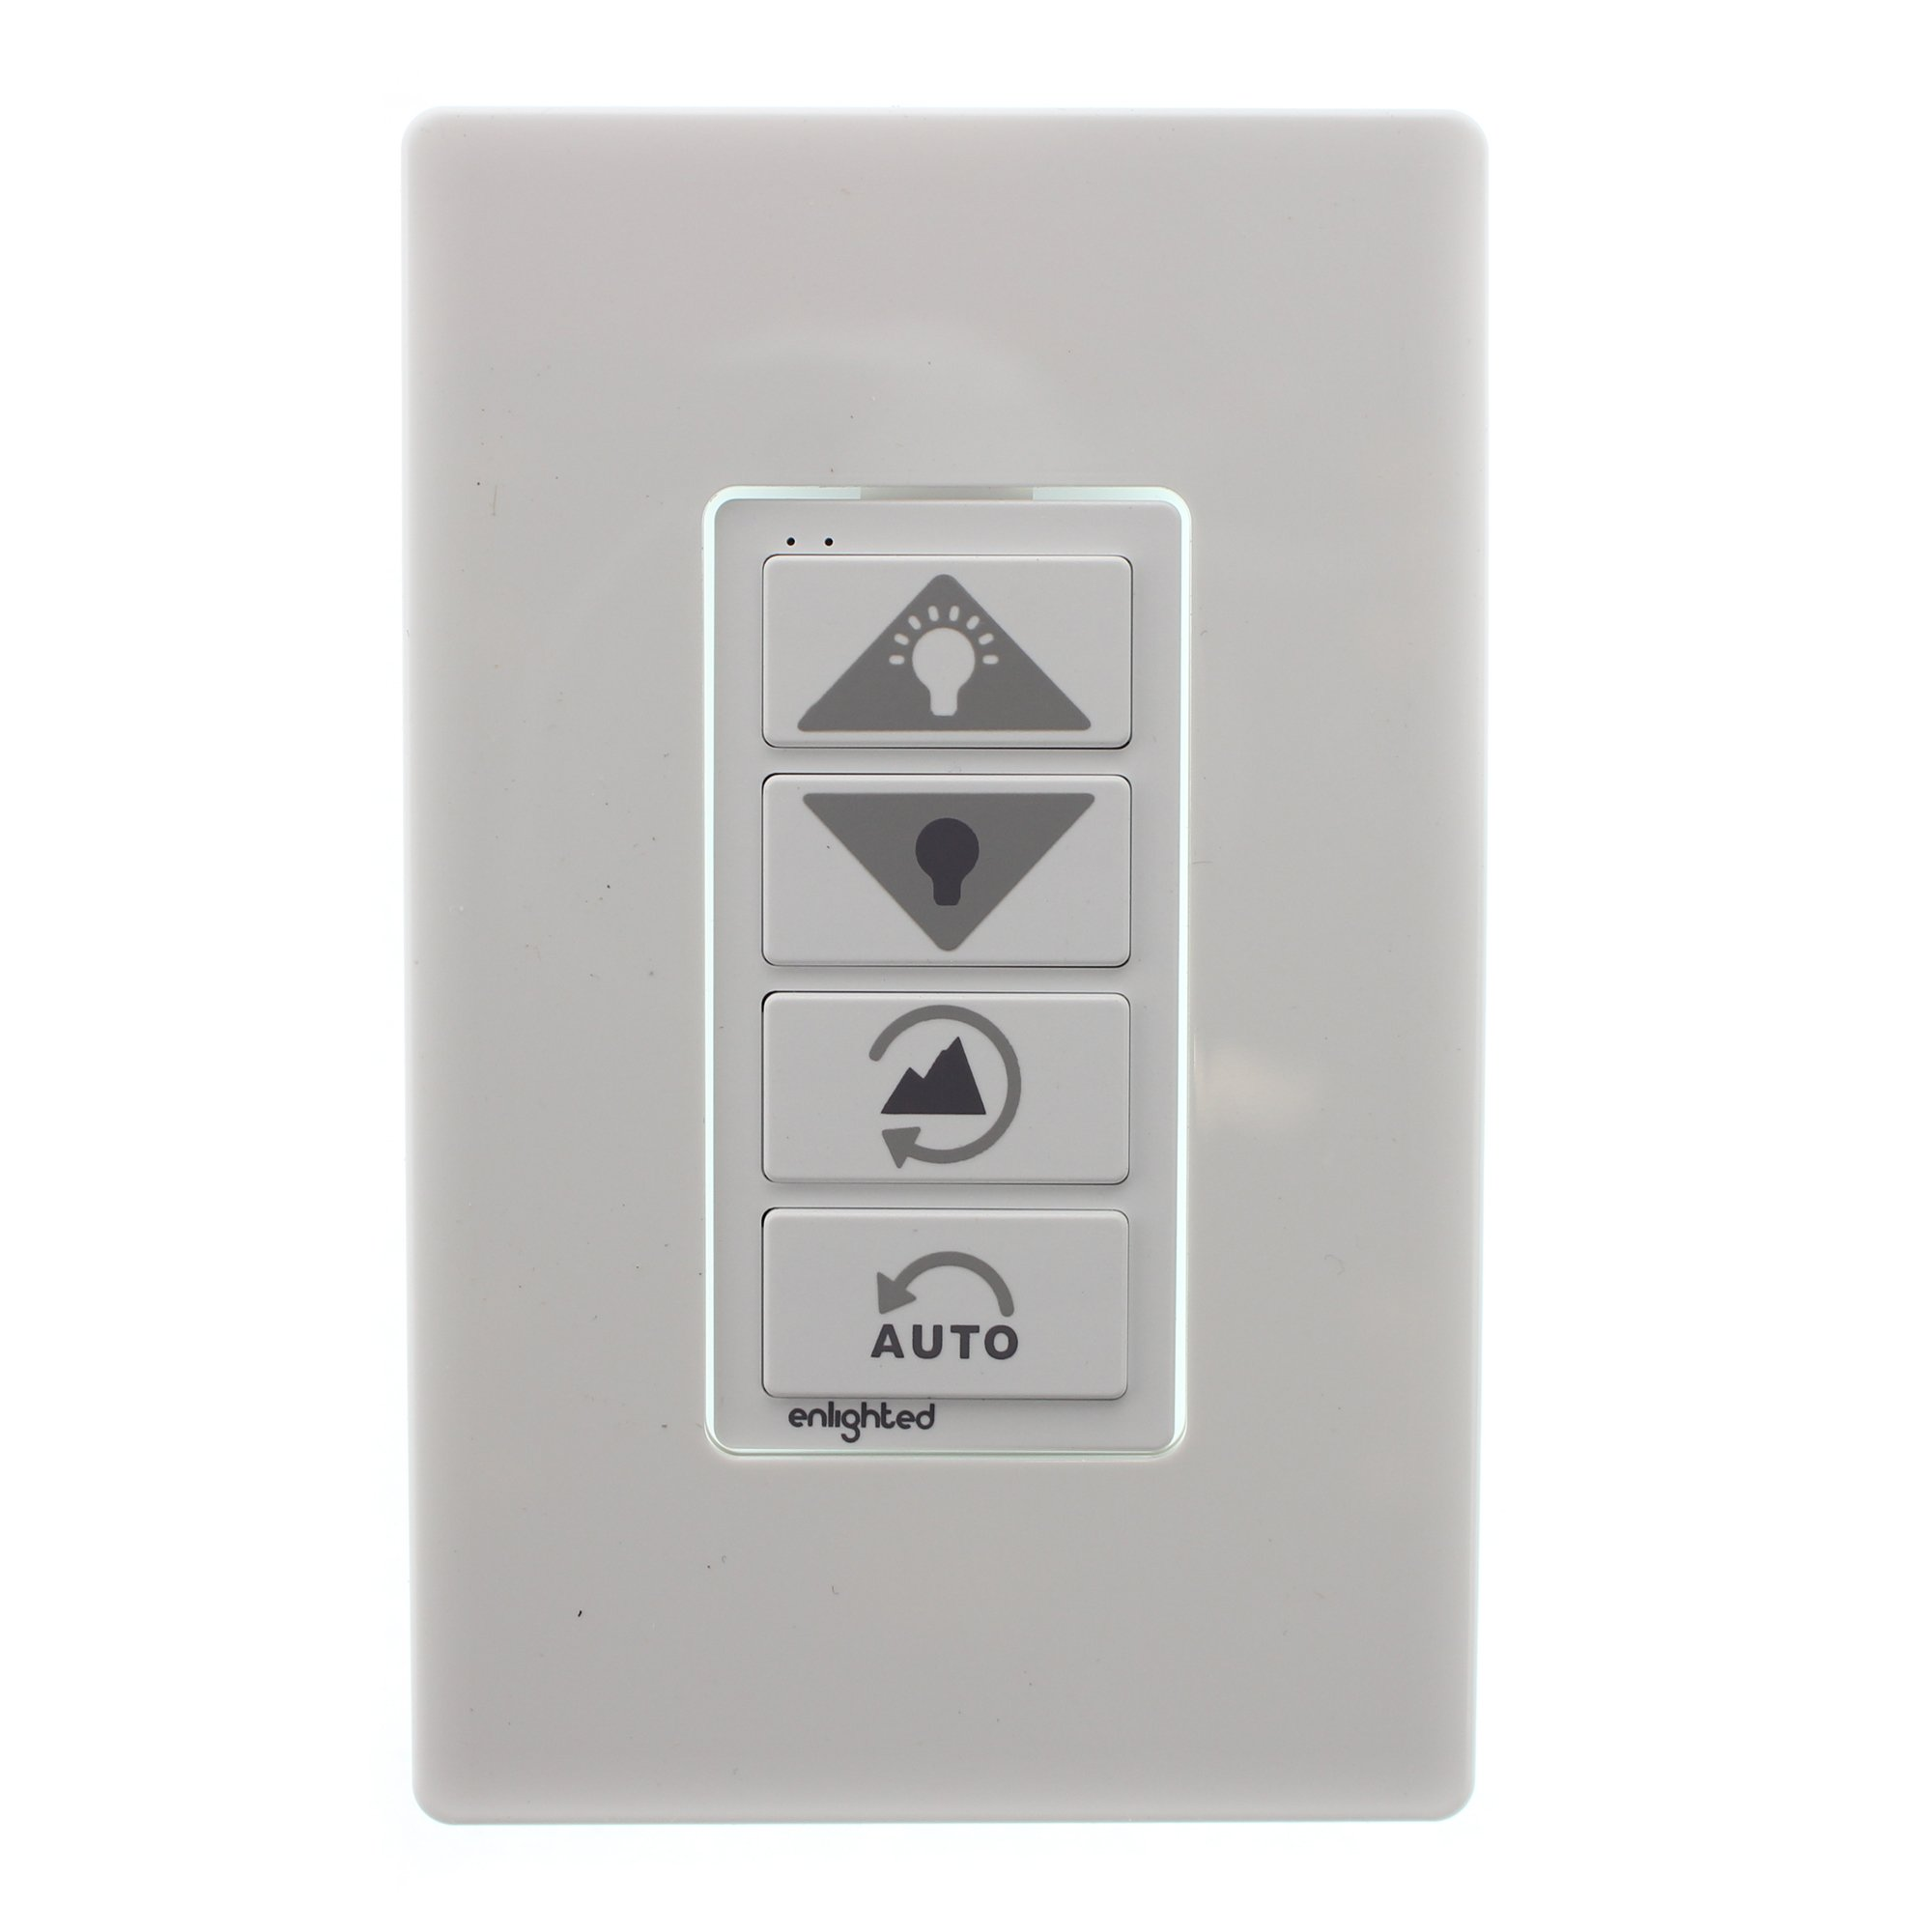 Enlighted Lighting WS-2-00 Wireless Lighting Control Switch, 4-Button, White